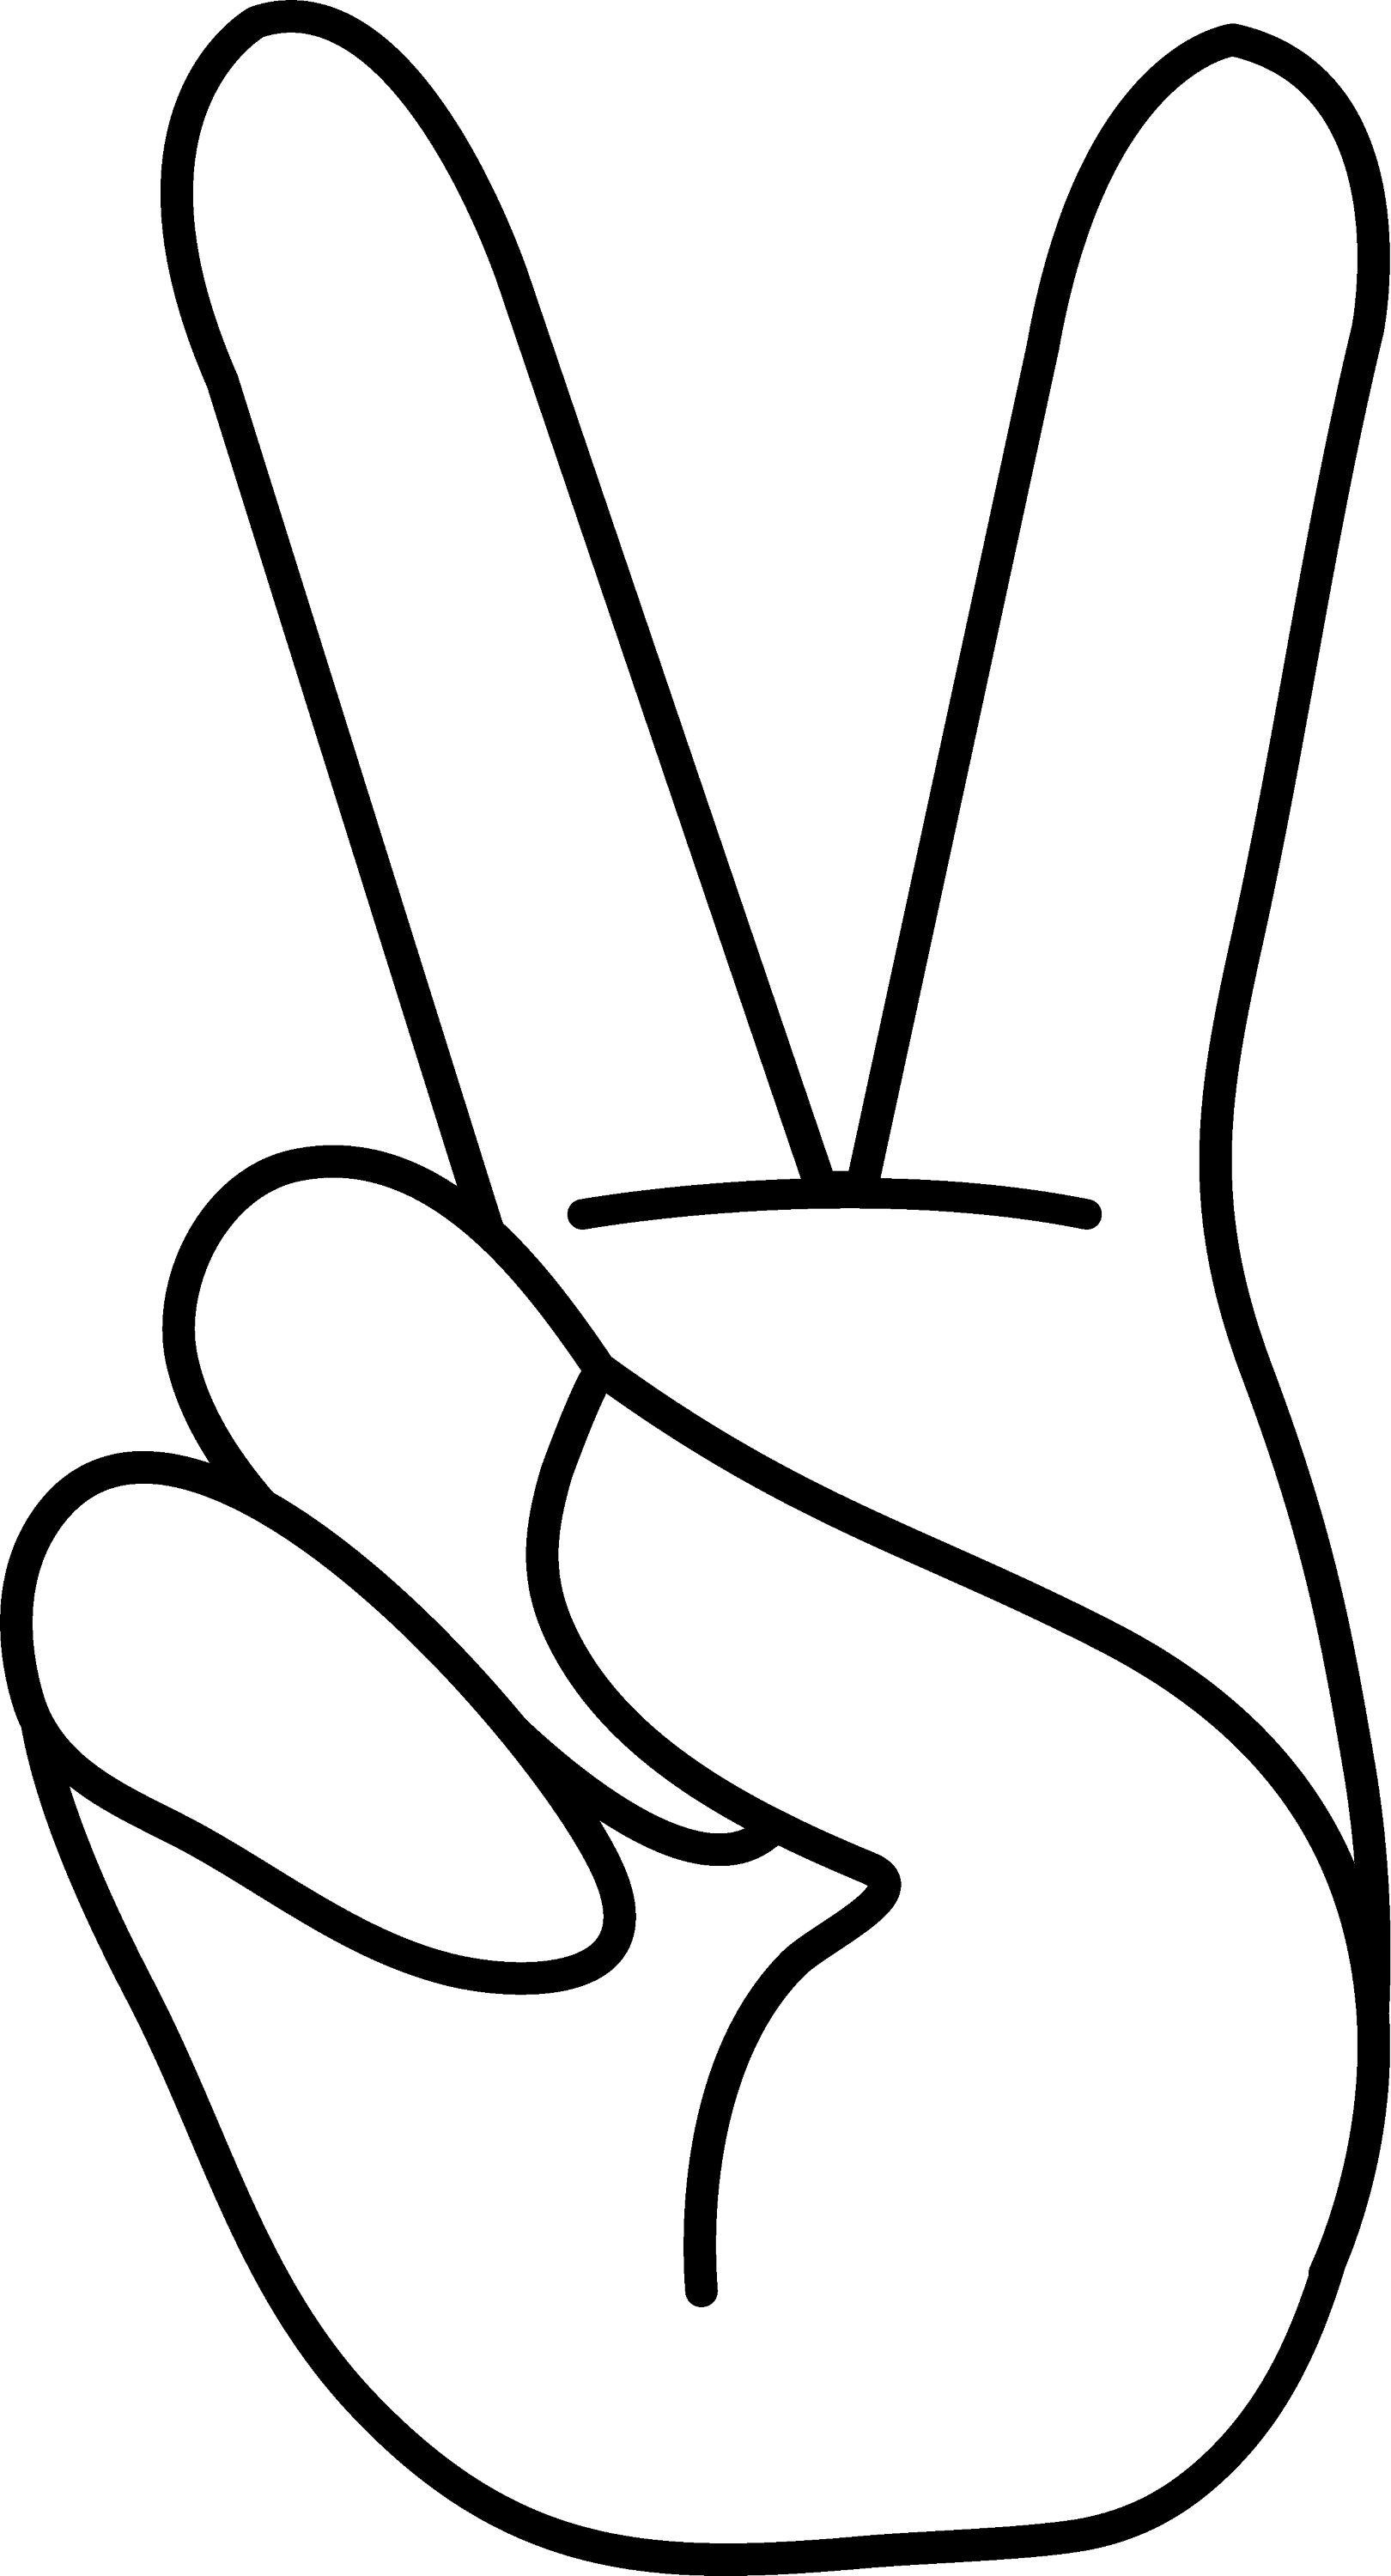 peace hand sign coloring page free clip art